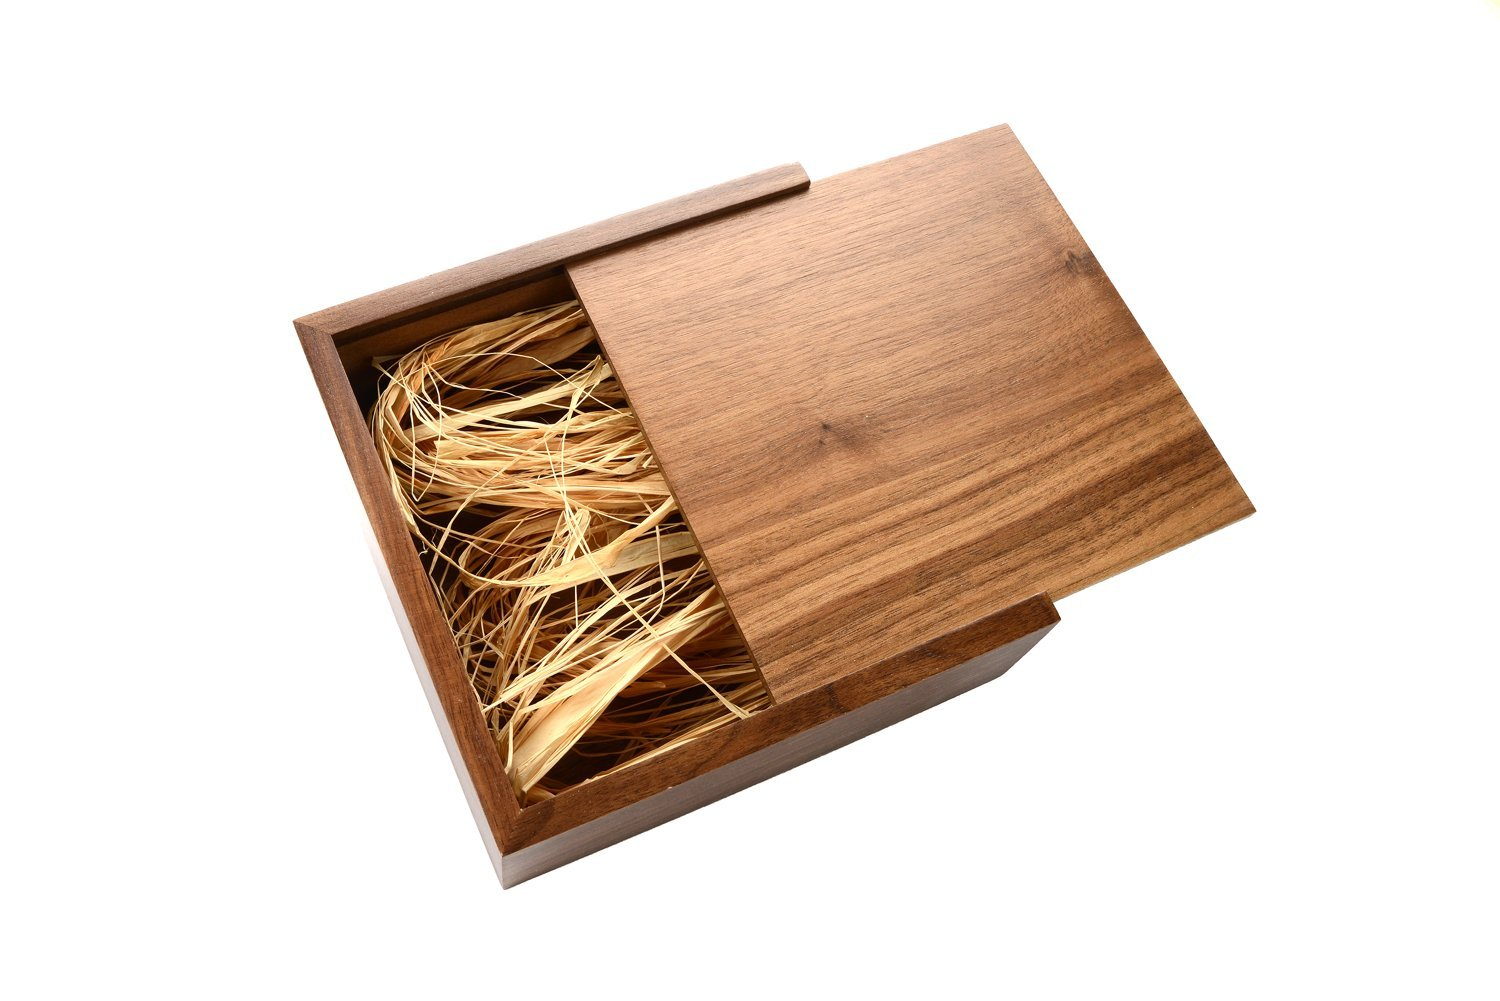 Walnut Wooden 4x6 Photo Box - Single Item - Holds up to 120 Prints - Filled with Raffia Grass